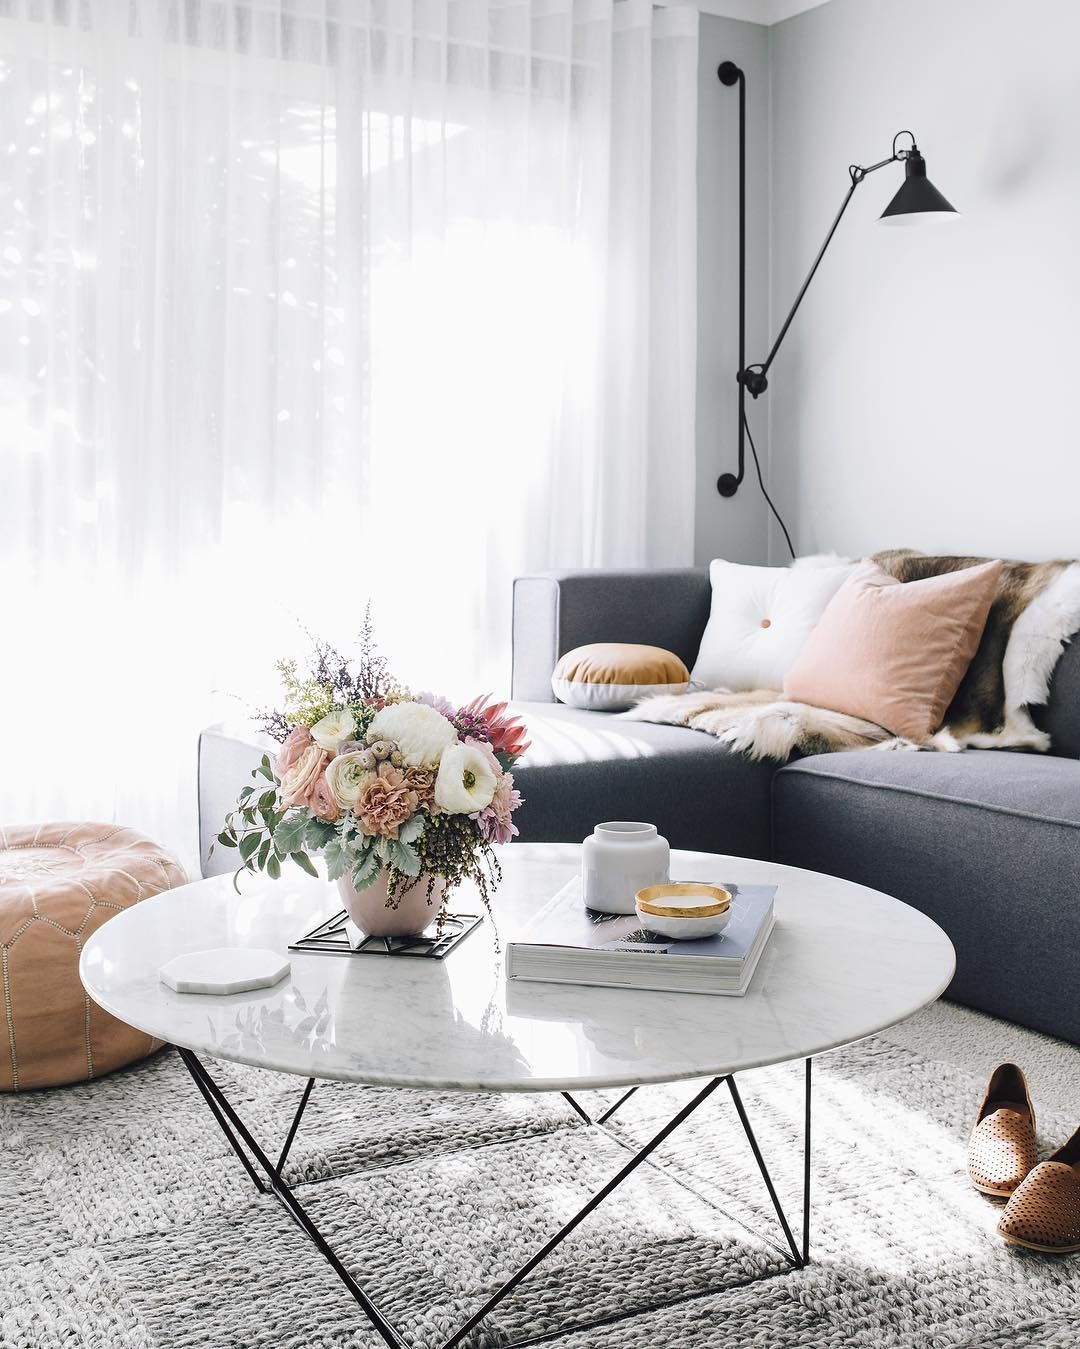 sofa tables perth wa bed couches mother and wife stylist photographer